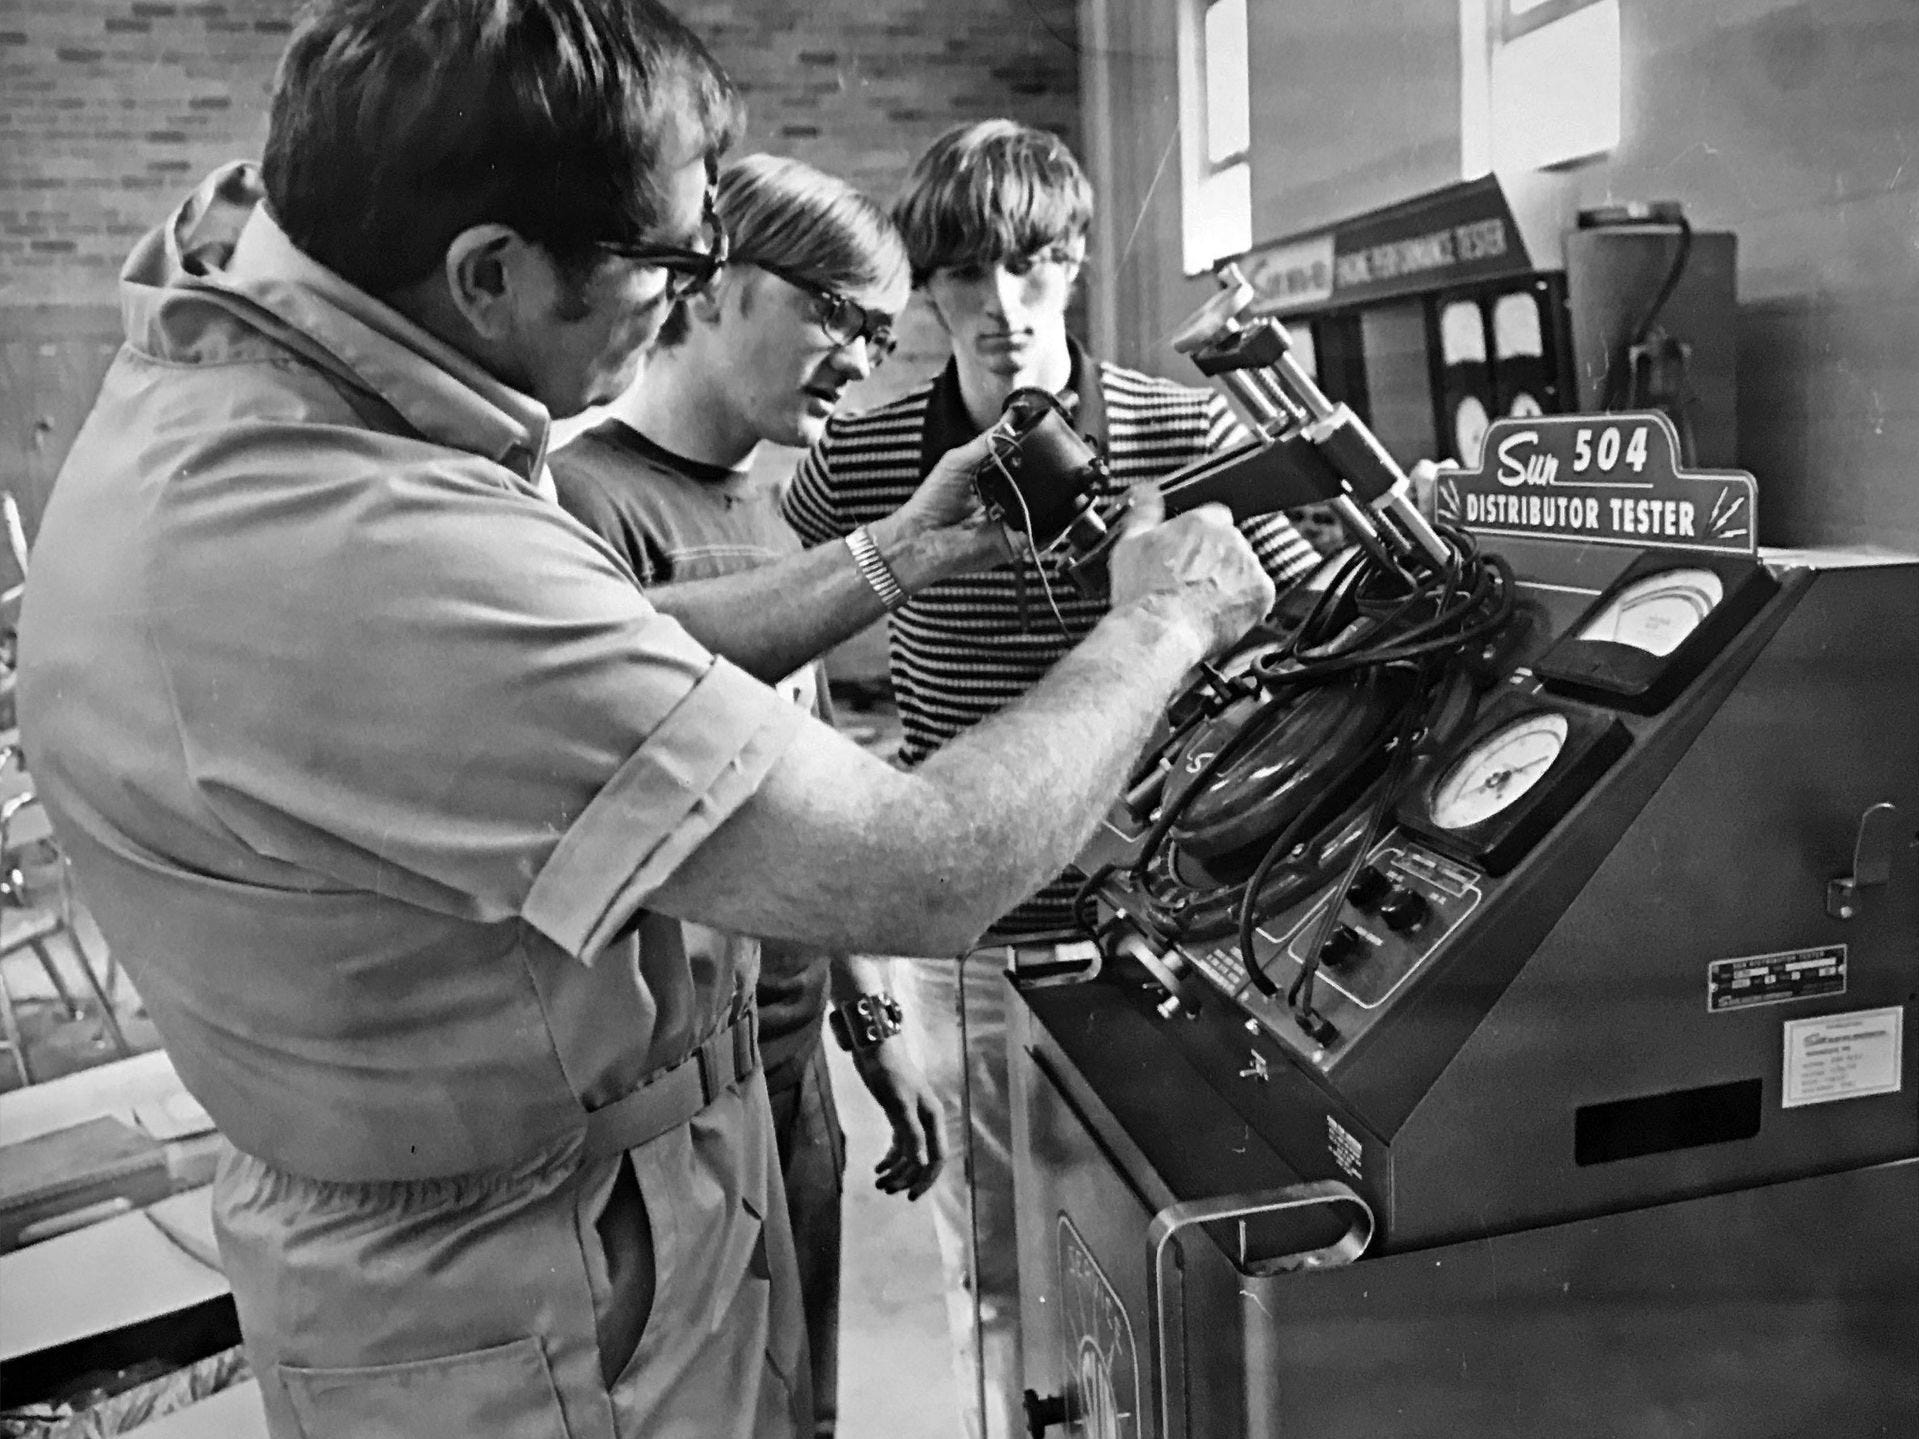 Paul Fiorentin and Paul Stanifer, juniors at Northwest High School listen to teacher Shelby McQueary explain the proper use of a new automotive distributor tester in 1975